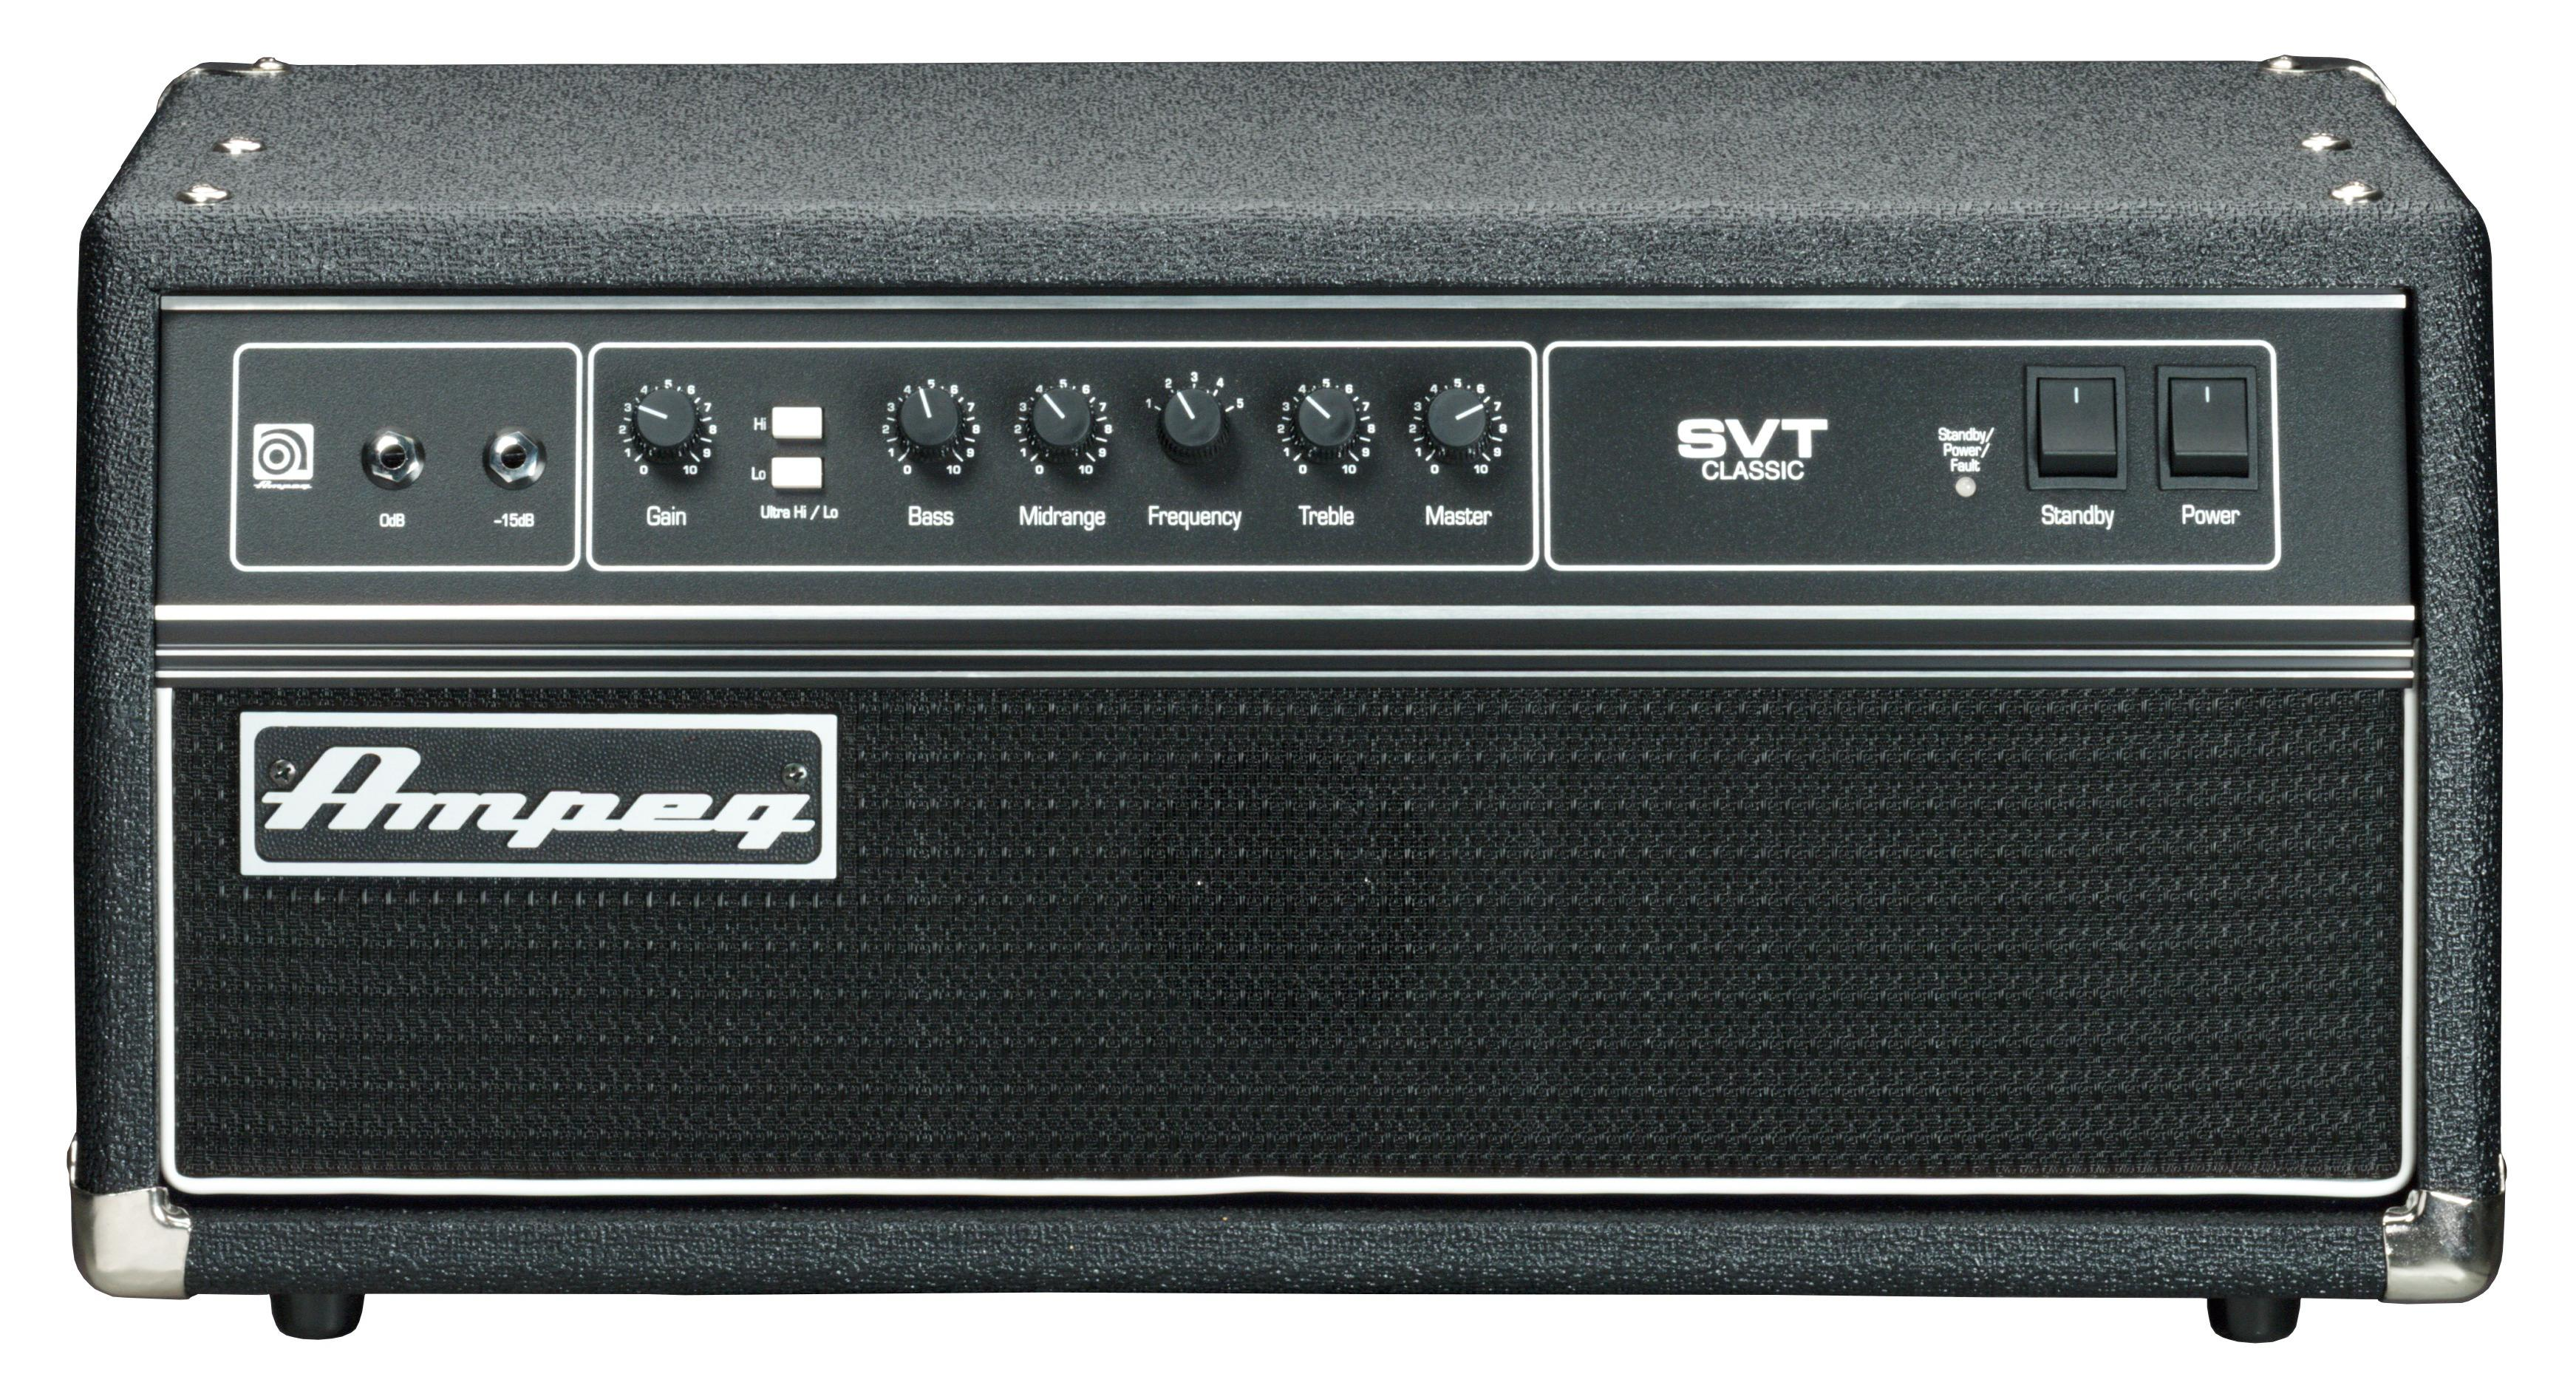 SV Beast Nrm, the Helix model of a Ampeg® SVT® (normal channel)